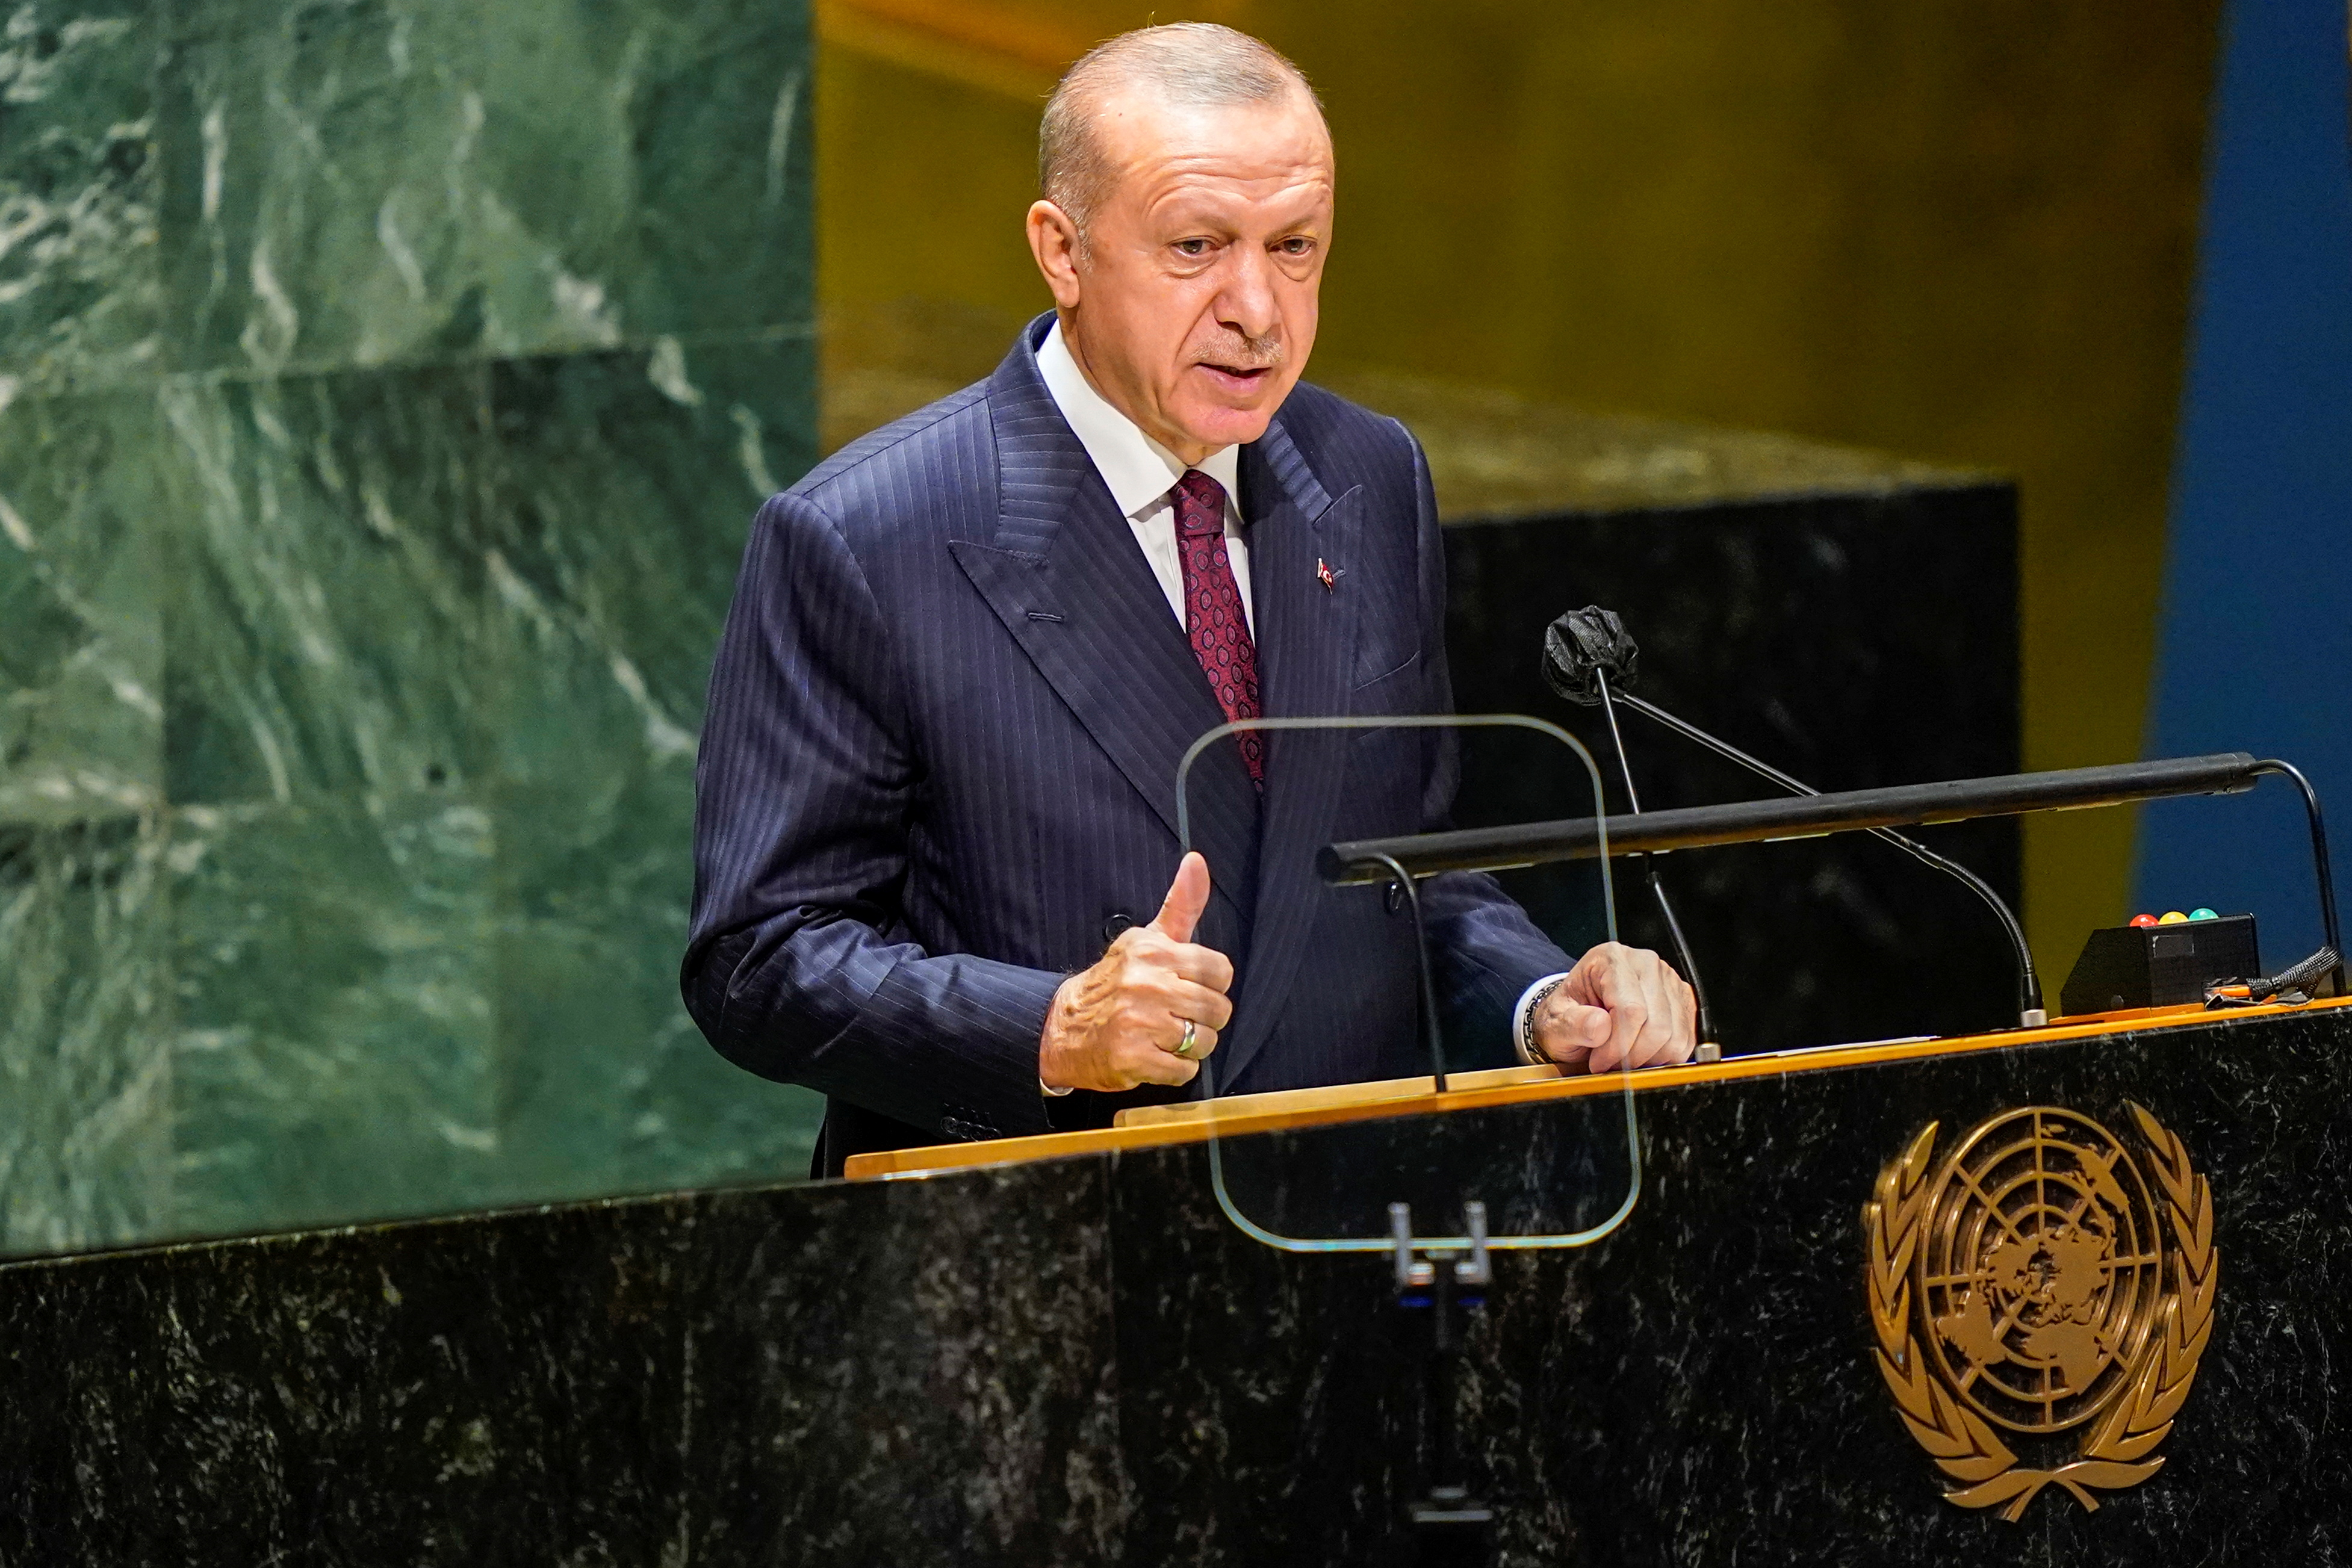 Turkish President Tayyip Erdogan speaks during the 76th Session of the General Assembly at UN Headquarters in New York on September 21, 2021. Mary Altaffer/Pool via REUTERS